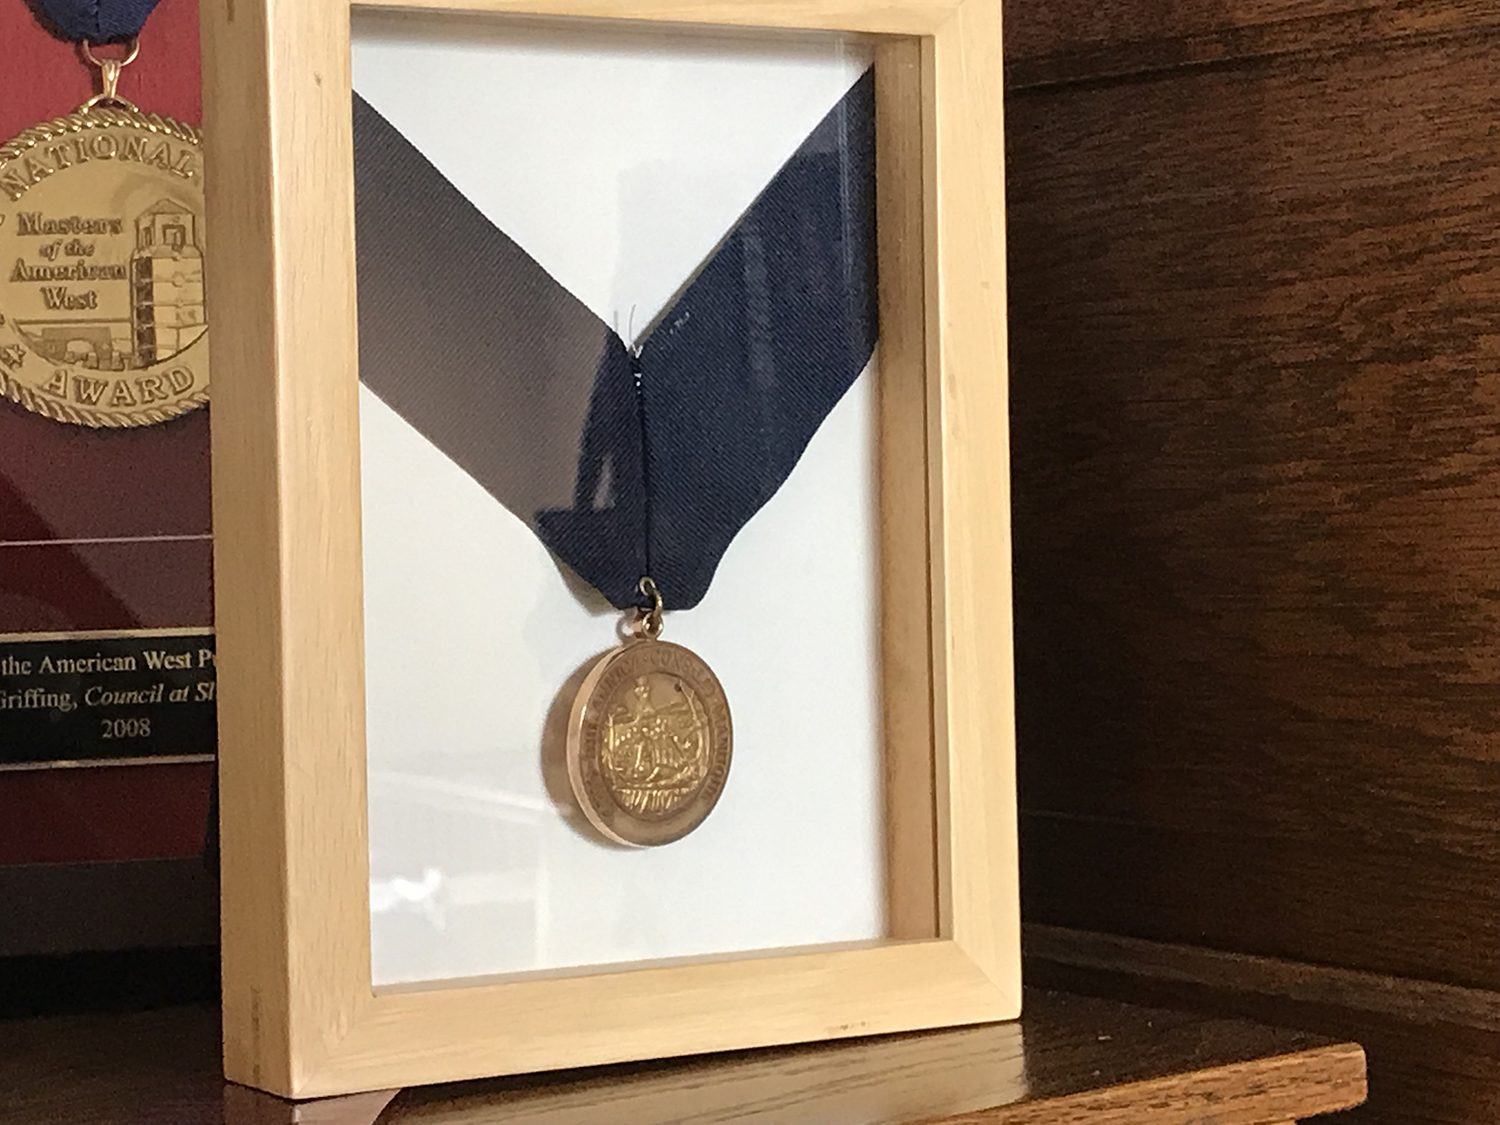 Robert Griffing's Forbes Medal. Awarded to him in 1999 by the Fort Pitt Museum and Pennsylvania Historical and Museum Commission for his contributions to art and the promotion of Western Pennsylvania history. Photo by Kathleen Lugarich.